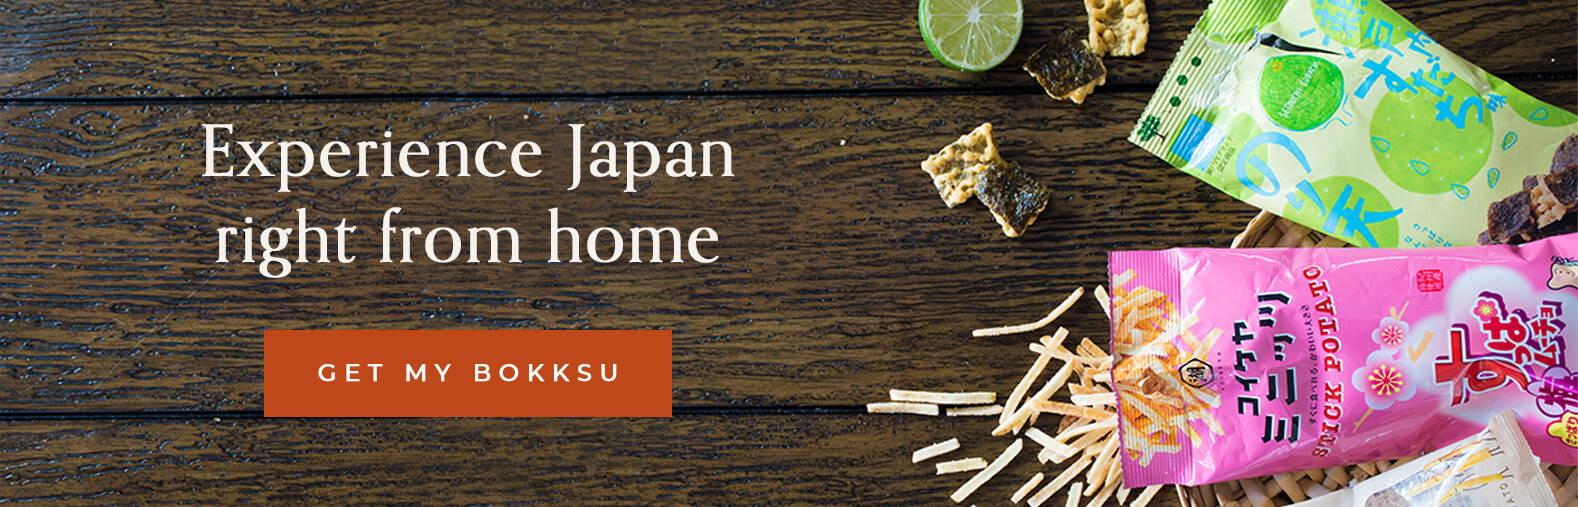 join Bokksu Japanese snack subscription box service